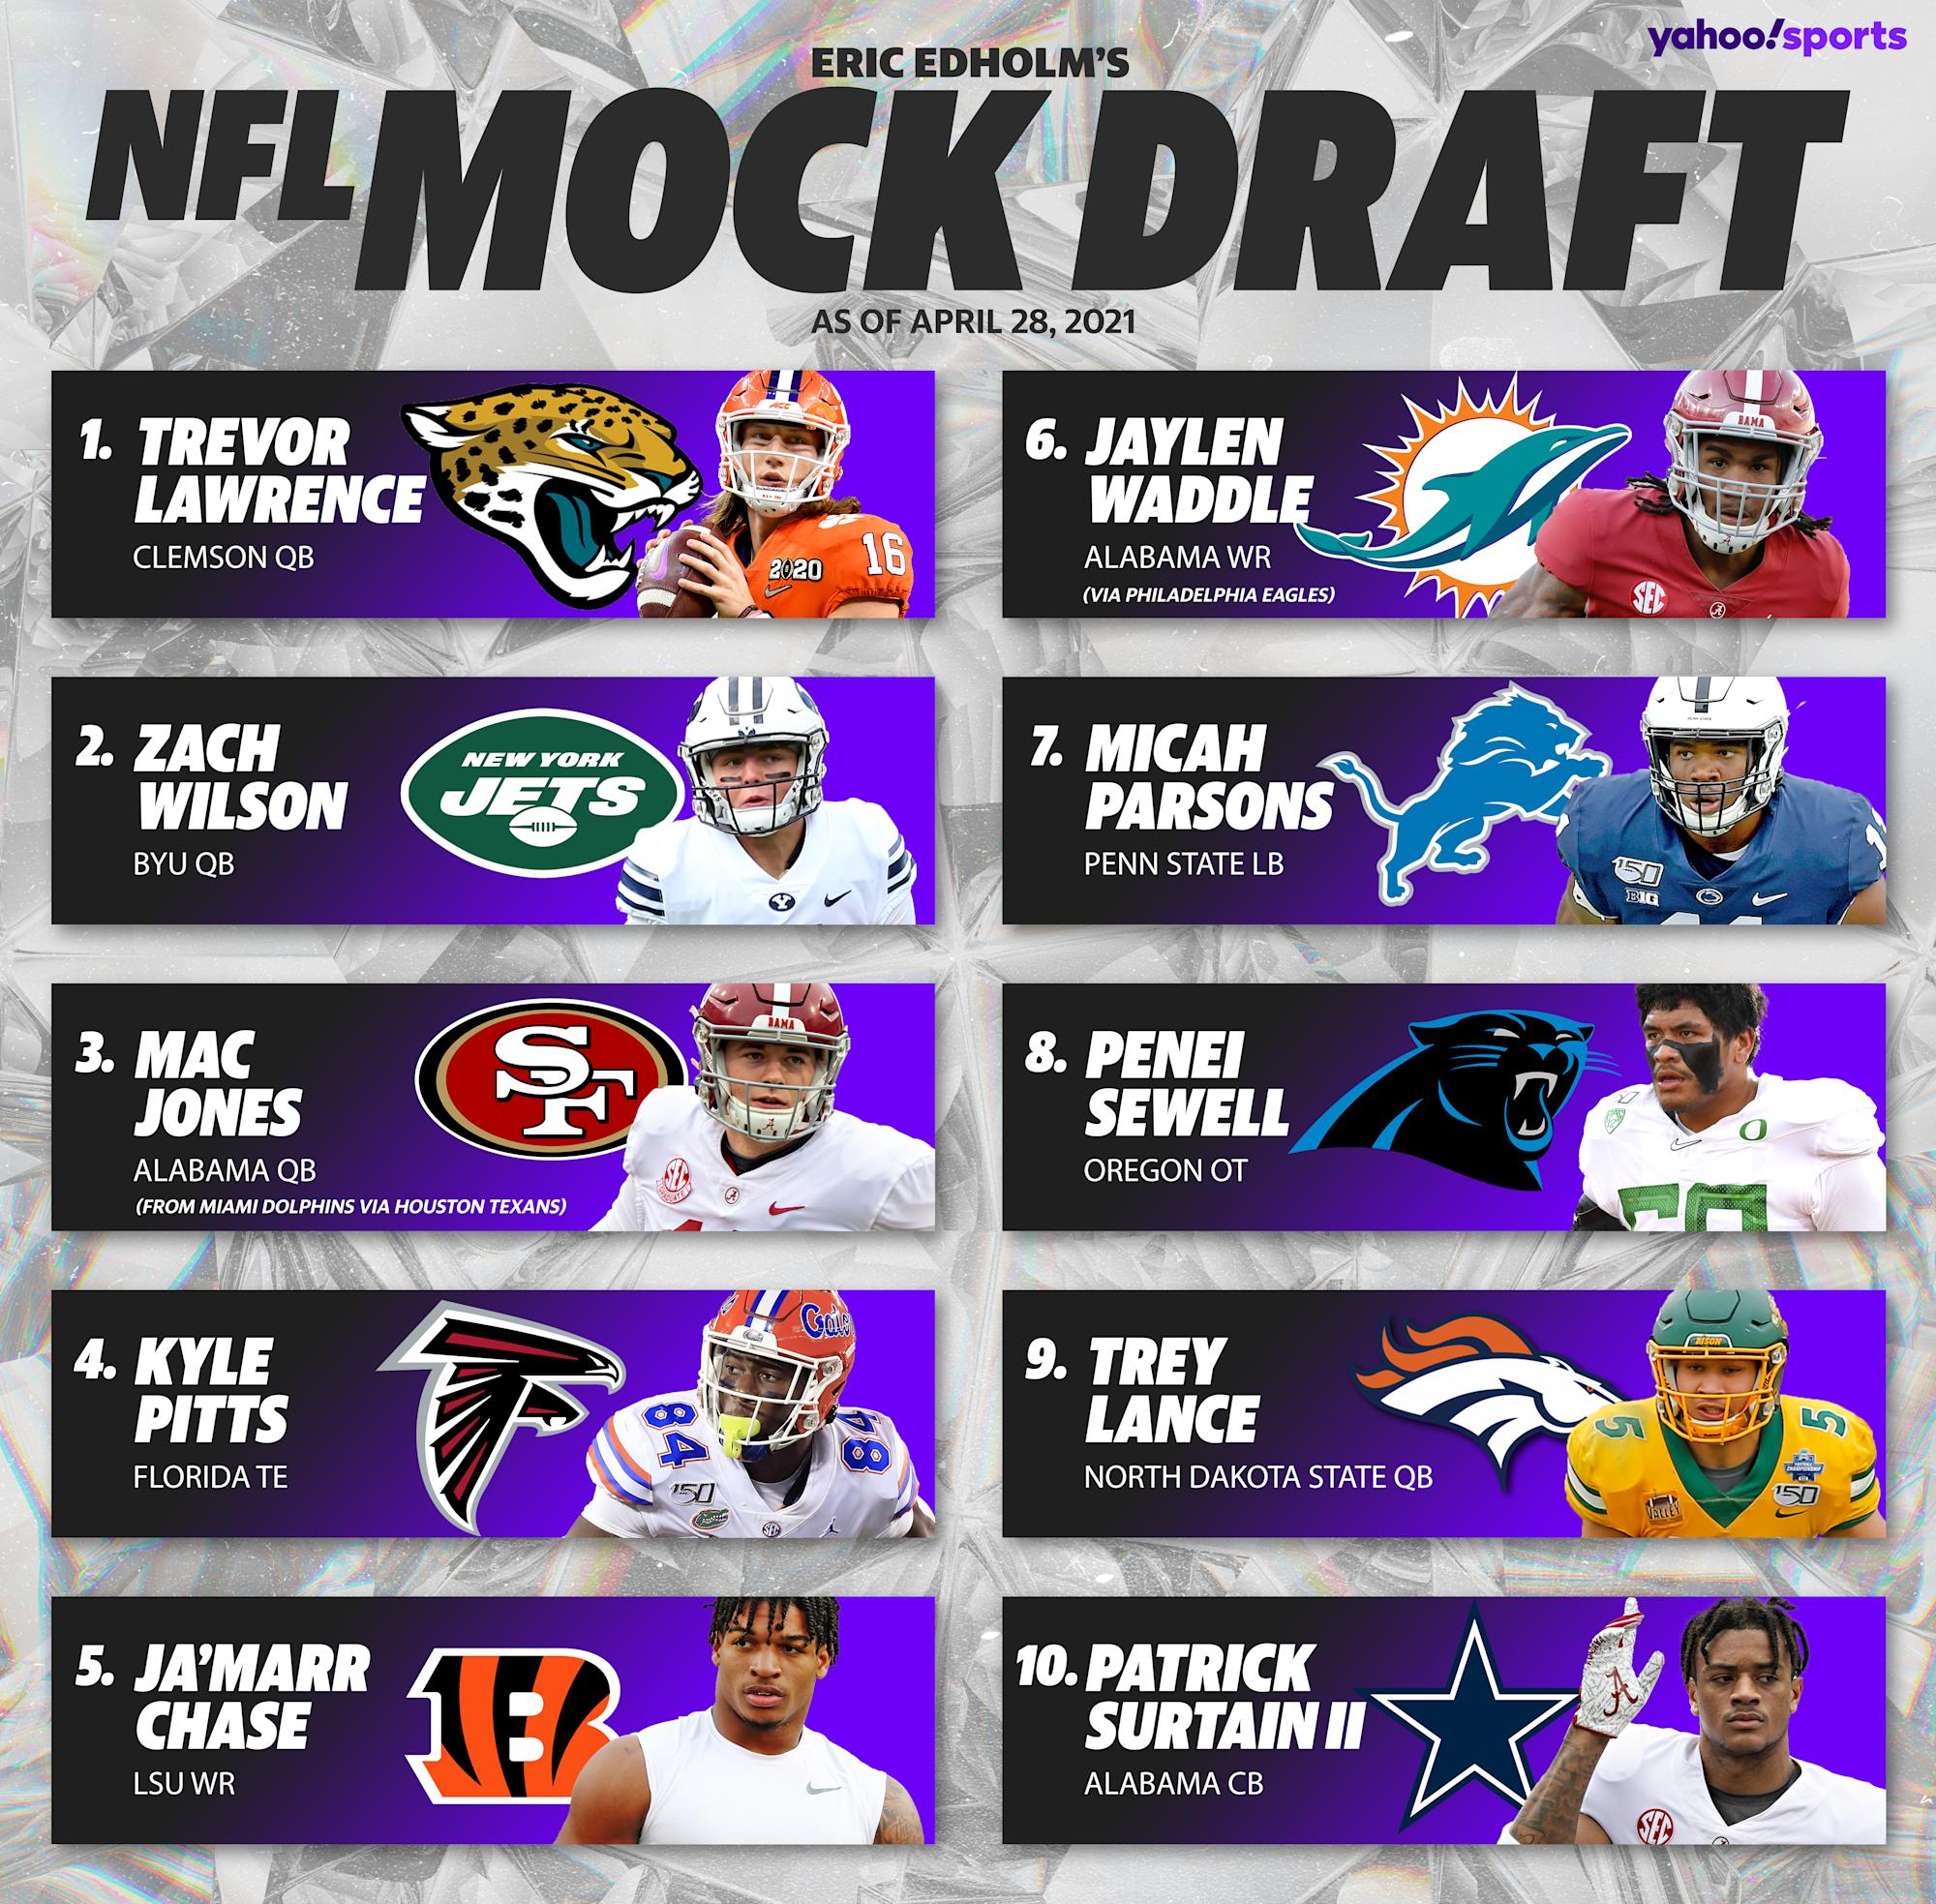 Final 2021 NFL mock draft: 49ers make controversial pick at 3 Justin Fields slips – Yahoo Sports